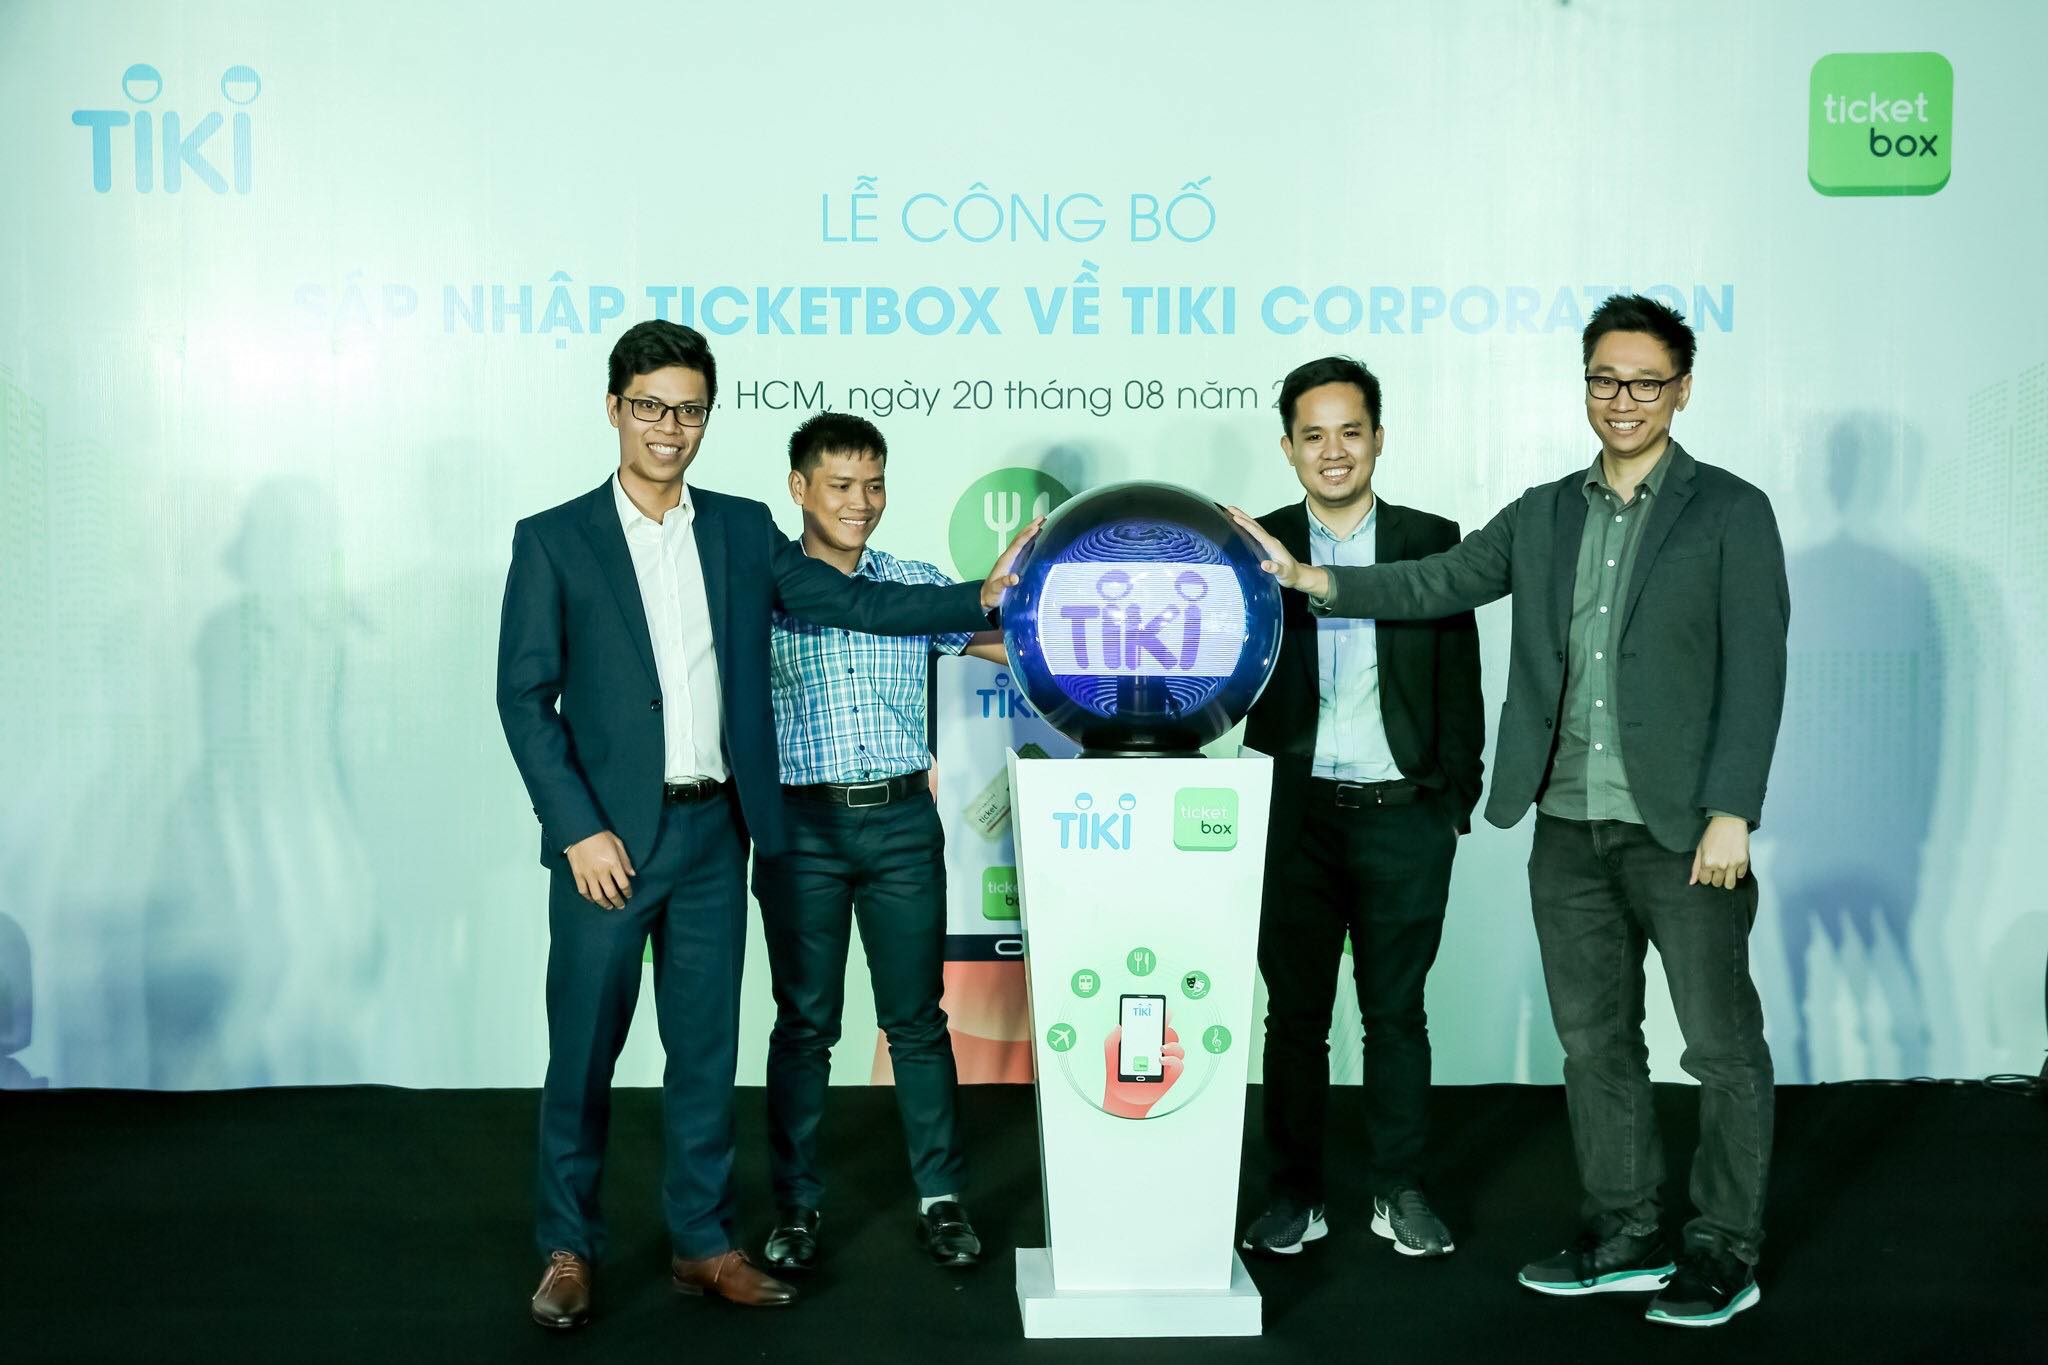 Vietnam's leading e-commerce site Tiki purchases online ticketing startup Ticketbox